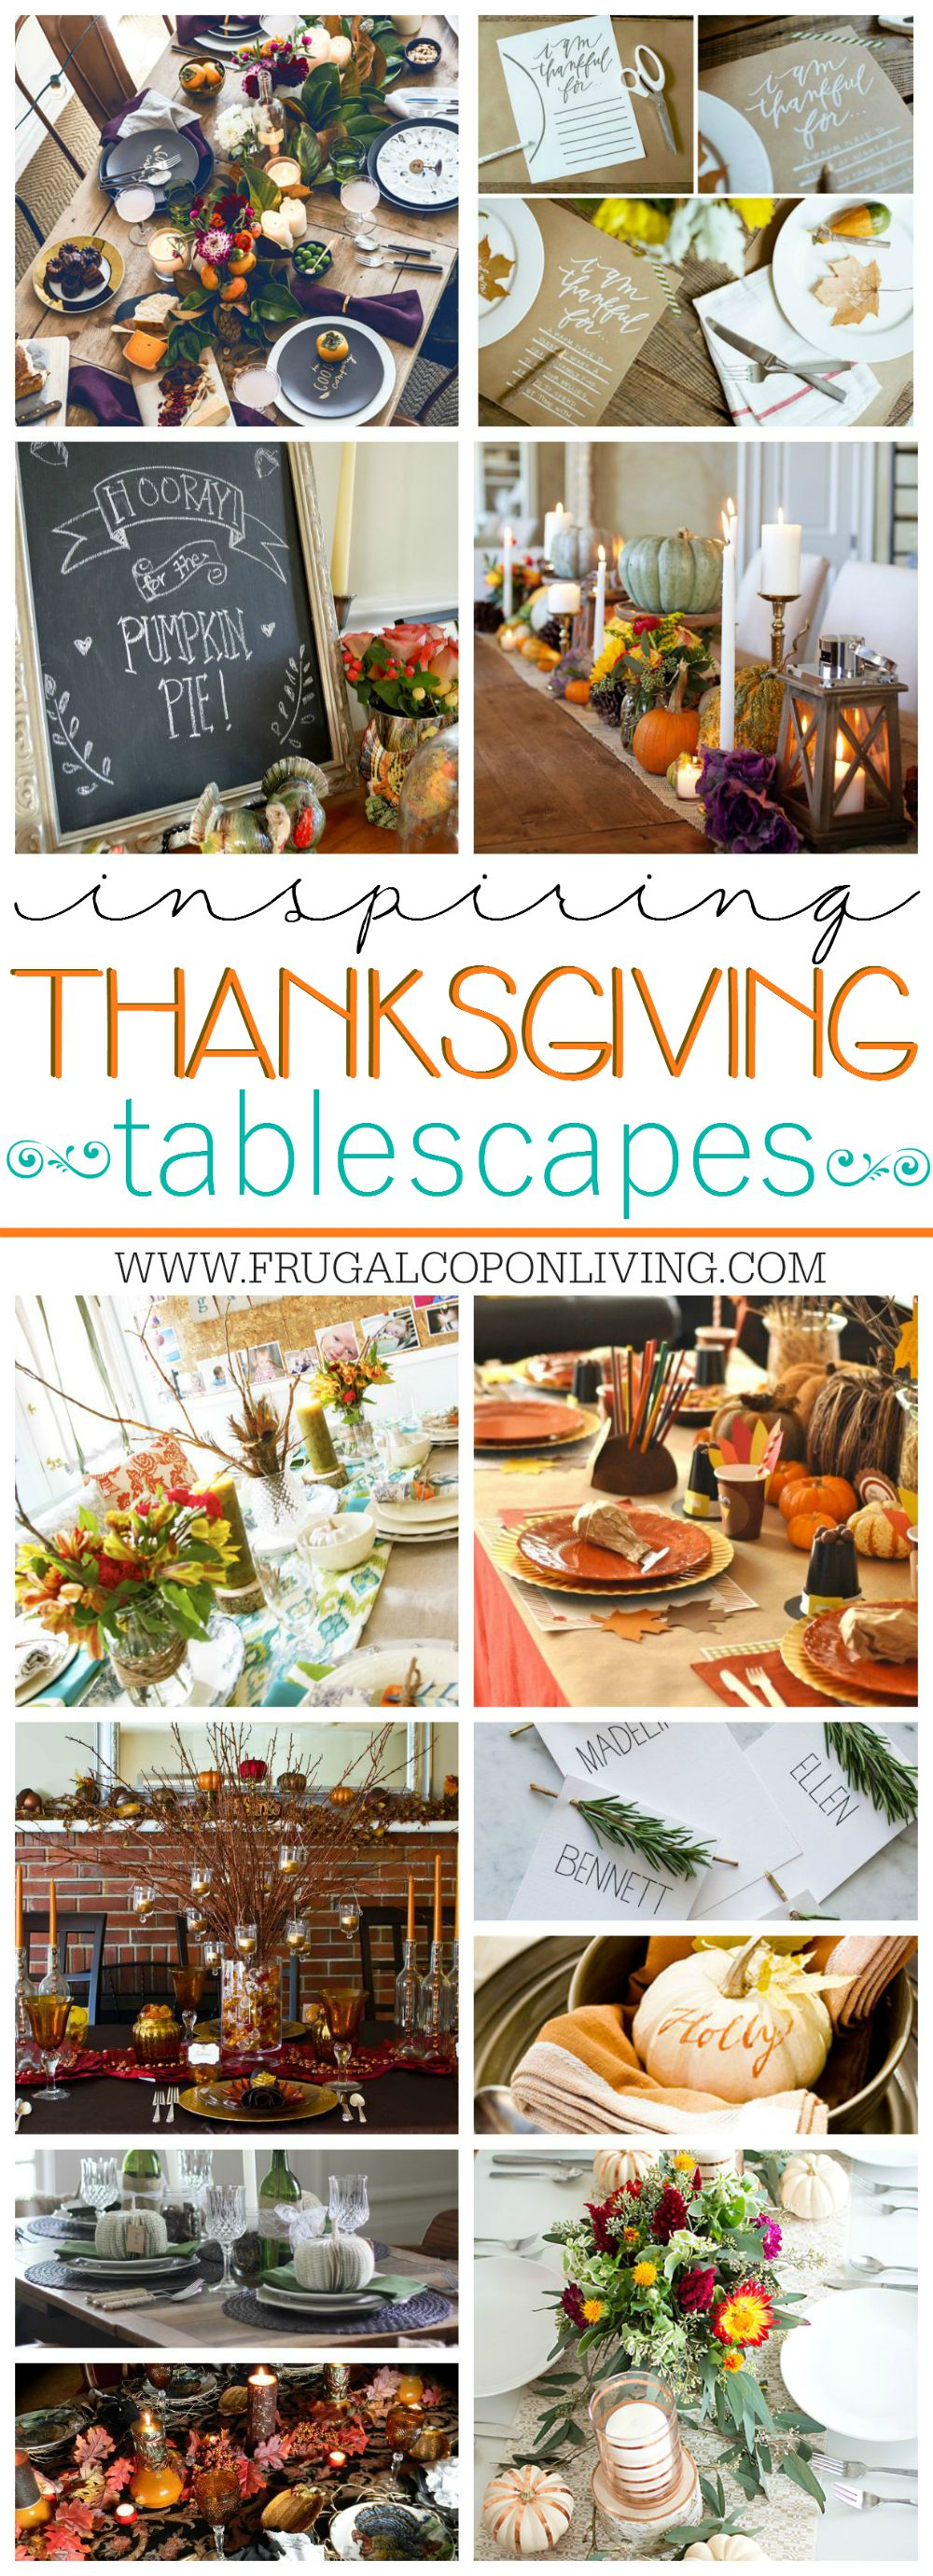 Inspirational Thanksgiving Tablescapes on Frugal Coupon Living